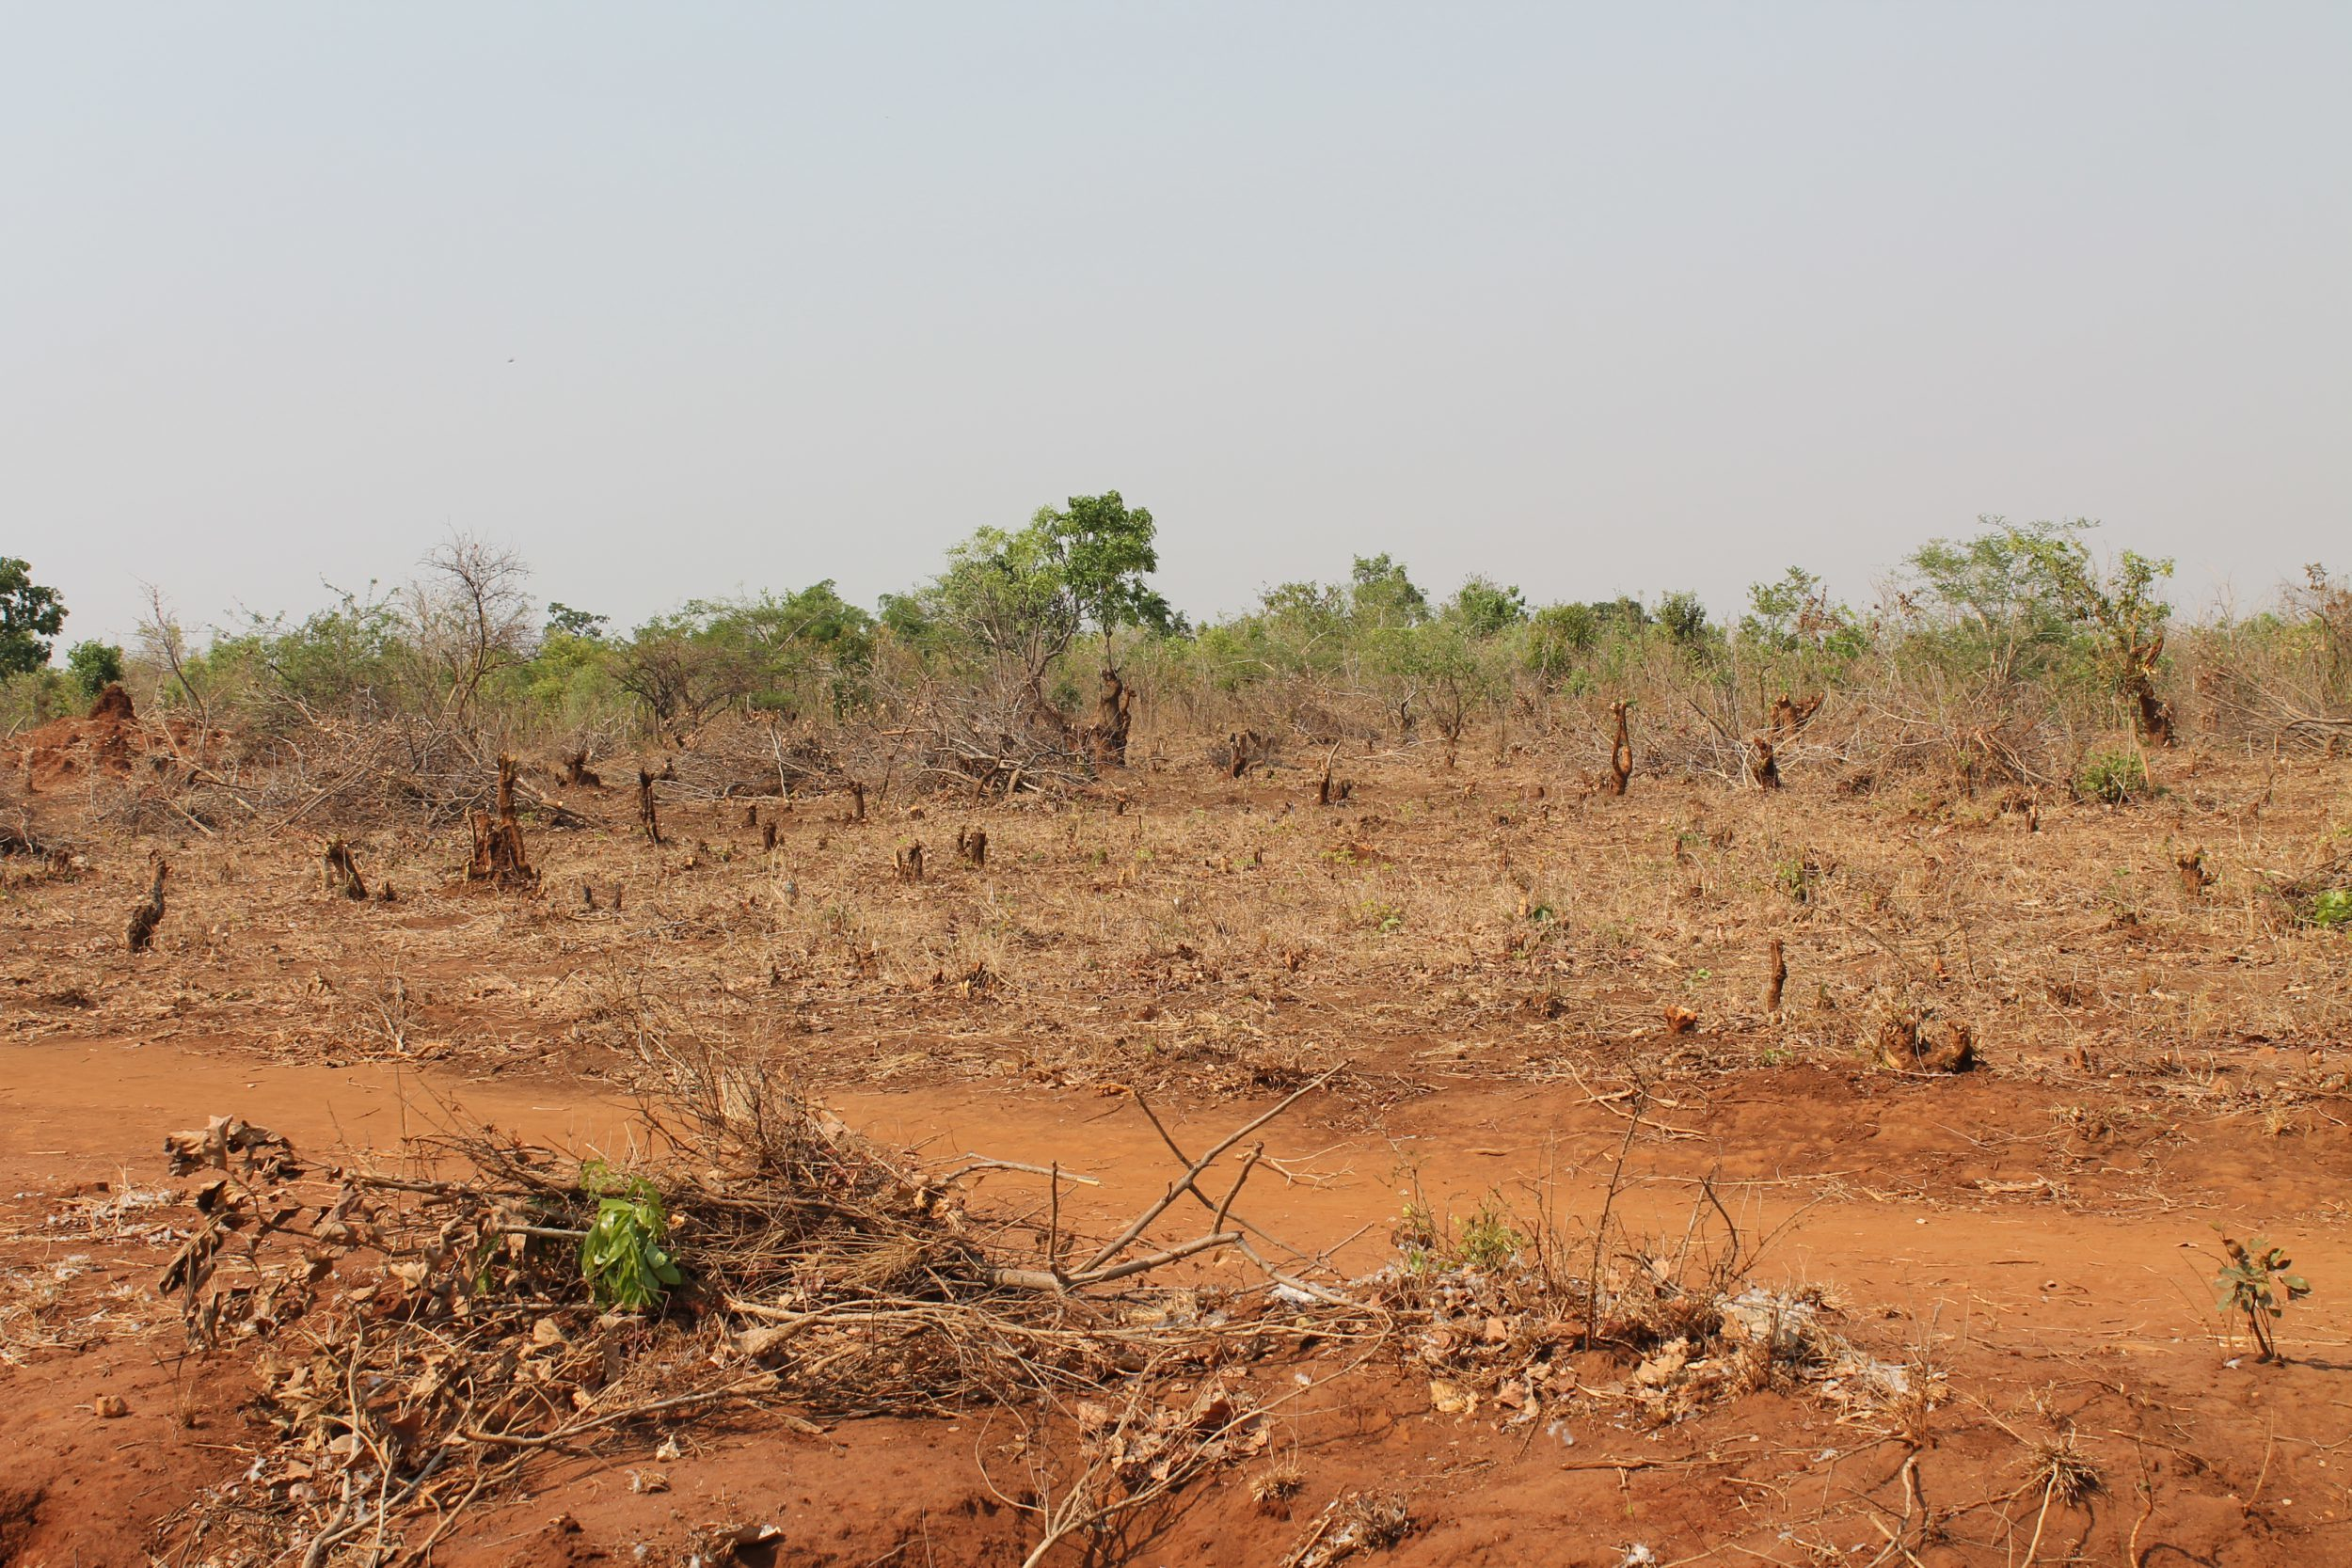 Deforestation and land degradation in Ongolwe Ward e1580204873145